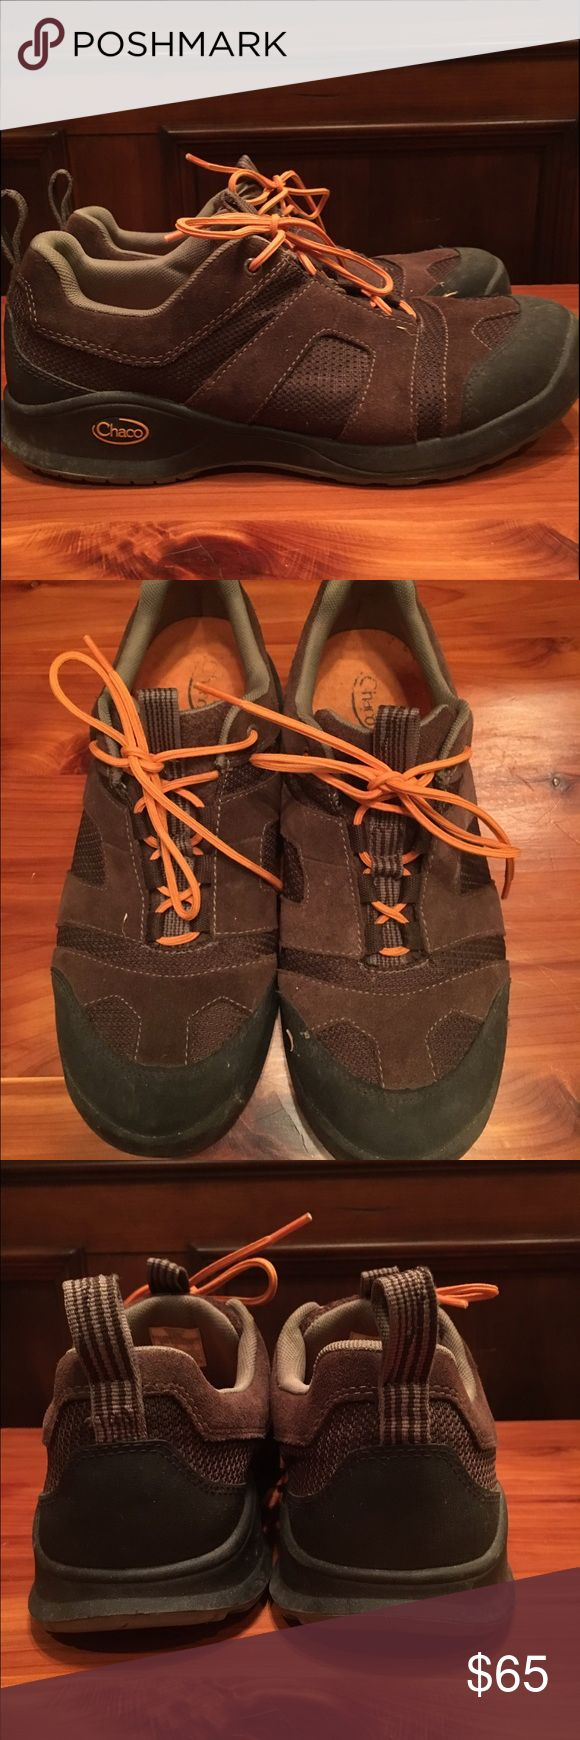 Chaco shoes Good condition! Lightly worn. Chaco Shoes